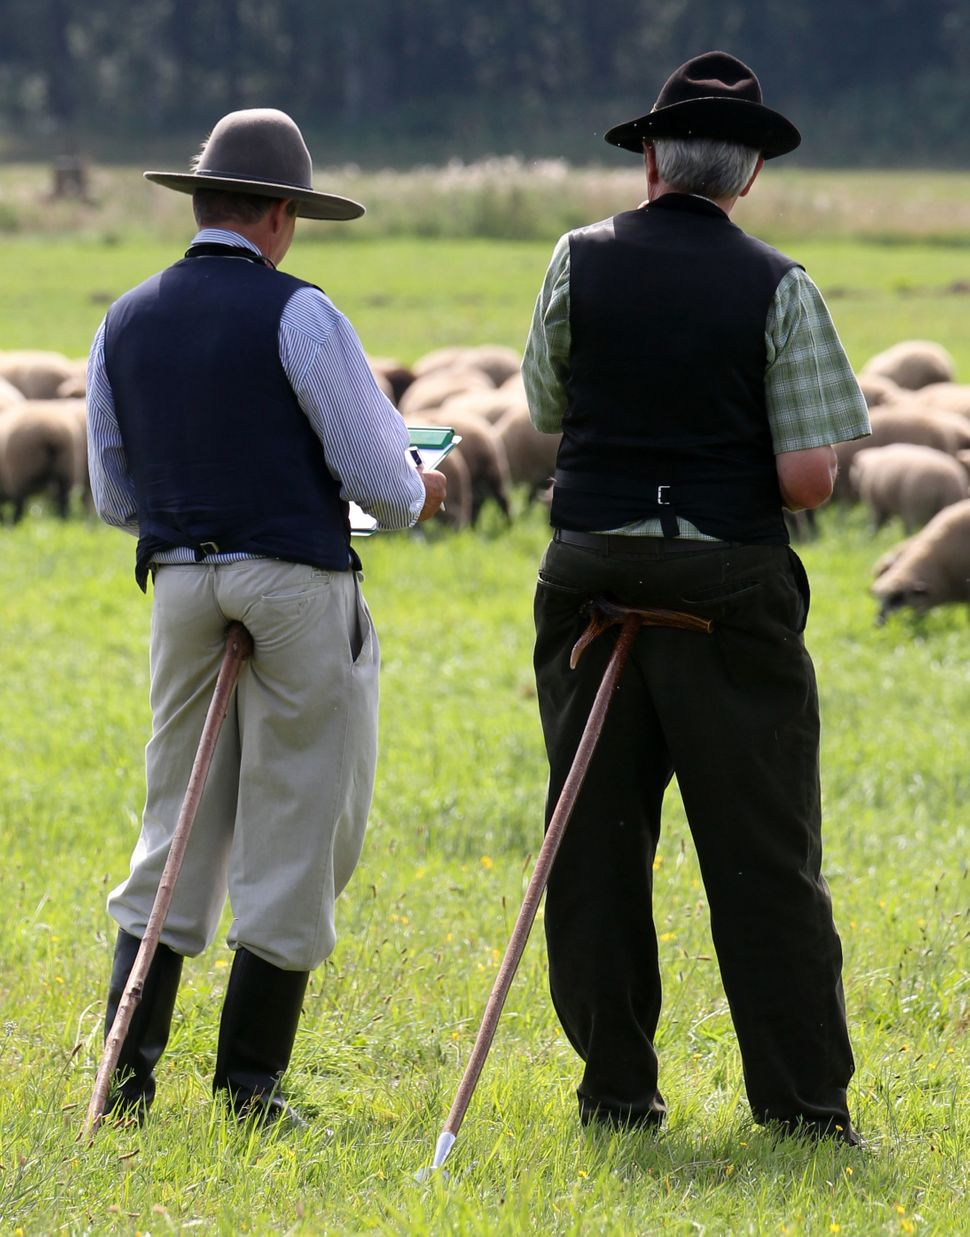 Two referees leaning on a cane watch sheep passing by during a professional sheperd contest in Schlesin, northern Germany. Sh